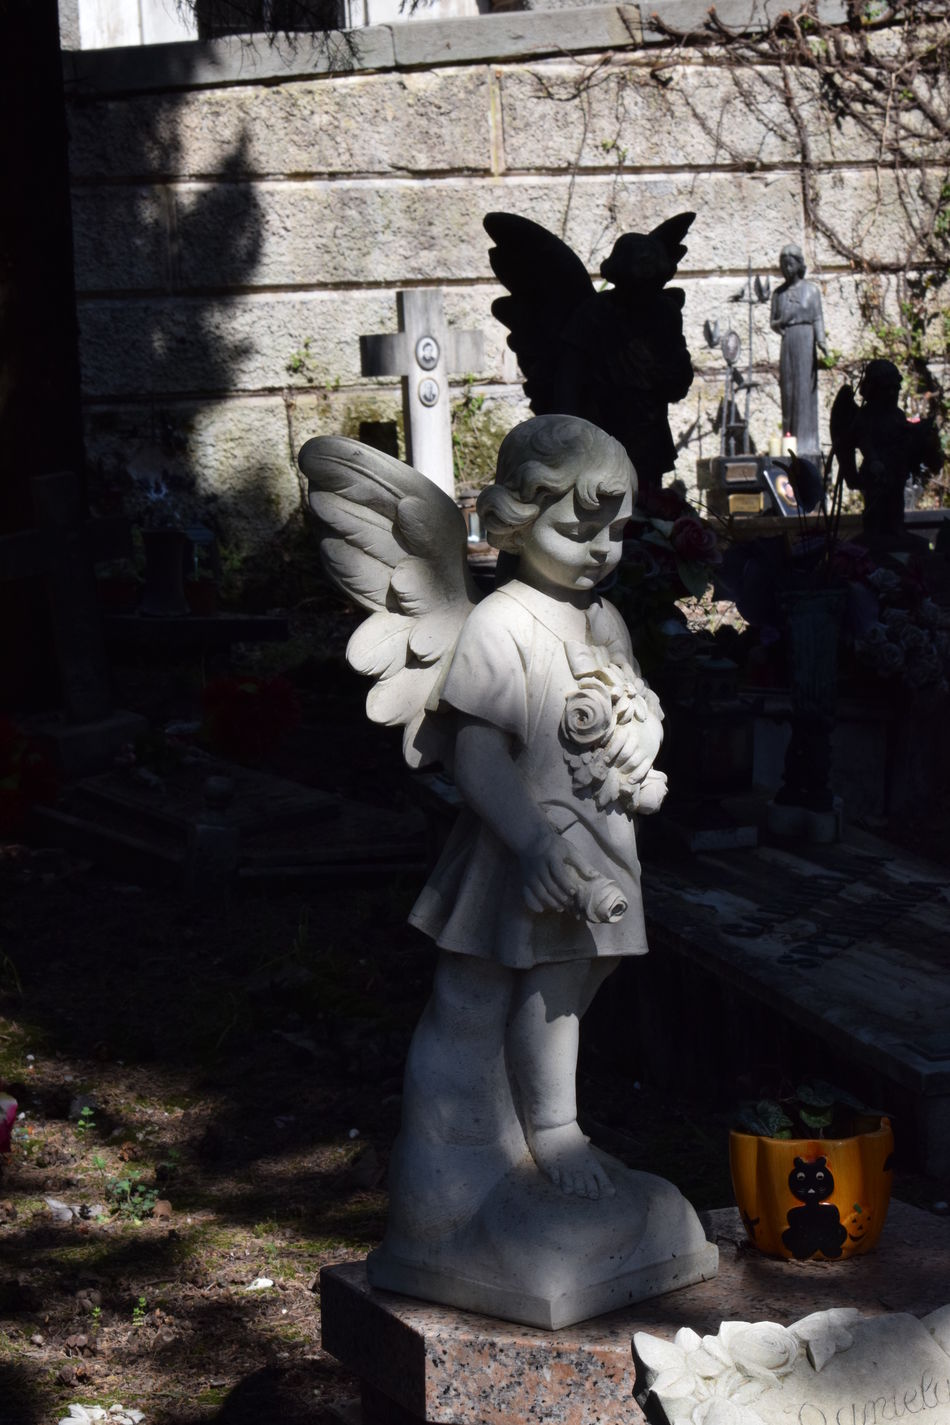 Monumental cemetery of Staglieno Angel Statue Cemetery Cemetery Art  Cemetery Photography Cemetery_shots Cemeterybeauty Grave Graveyard Graveyard Beauty Graveyard Collection Graveyardphotography Light And Shadow Statue